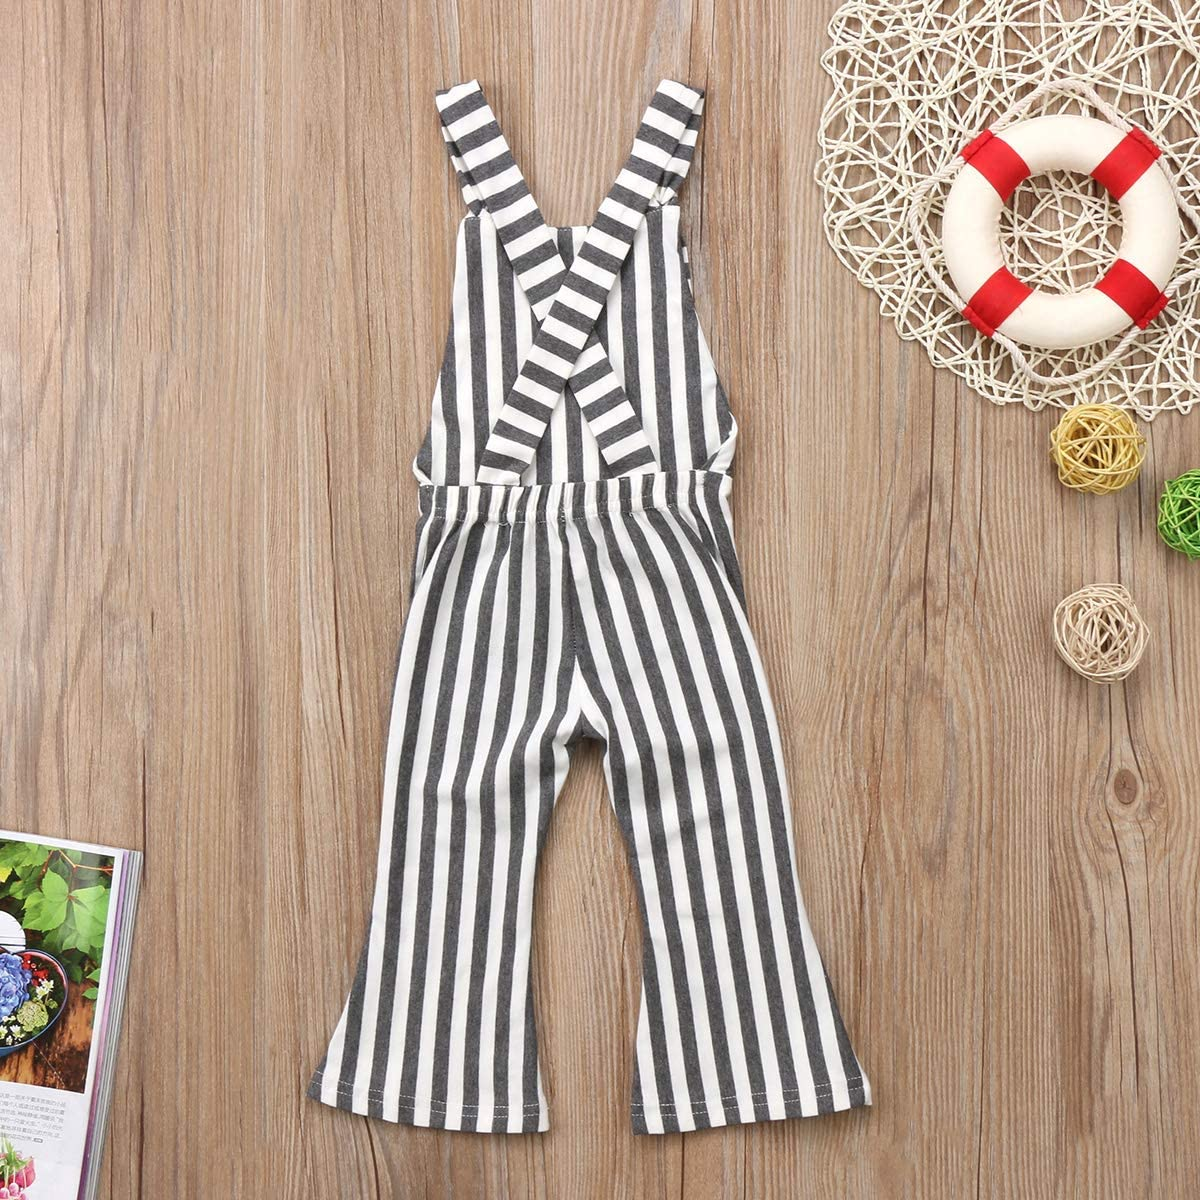 Douhoow Toddler Kids Baby Girls Suspender Jumpsuit Overalls Long Pants Outfits Clothes